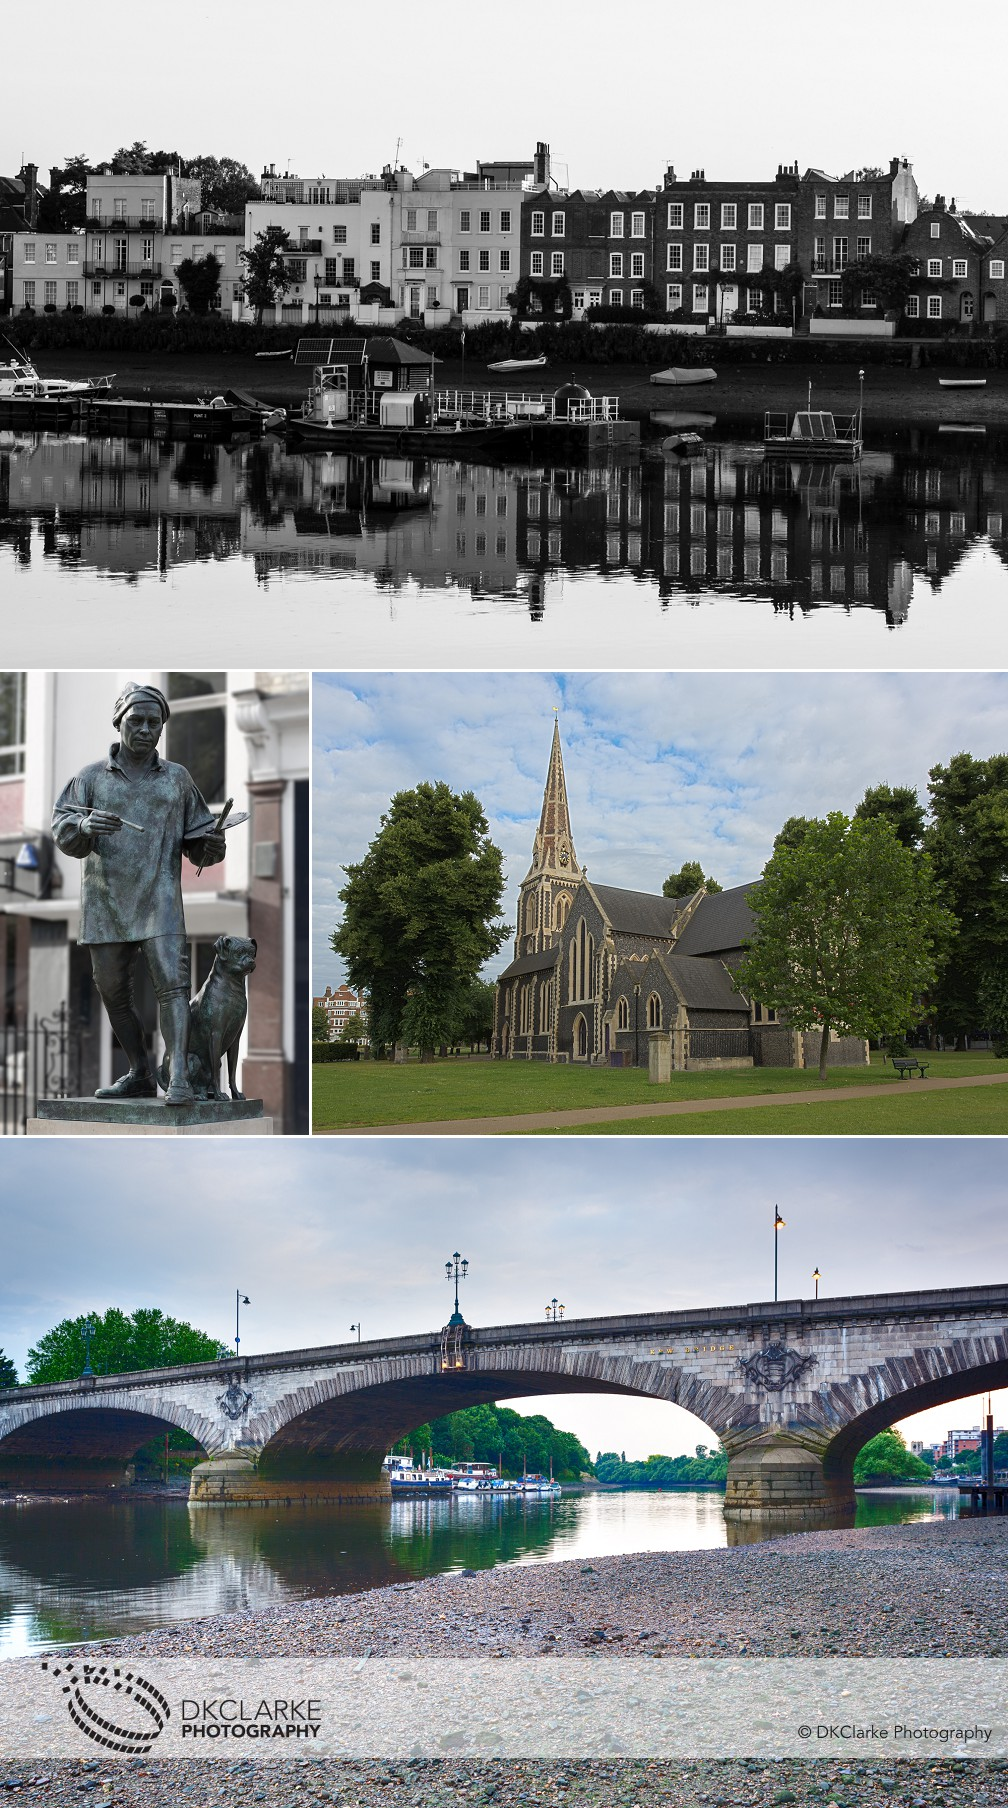 Chiswick photowalk with professional photographer